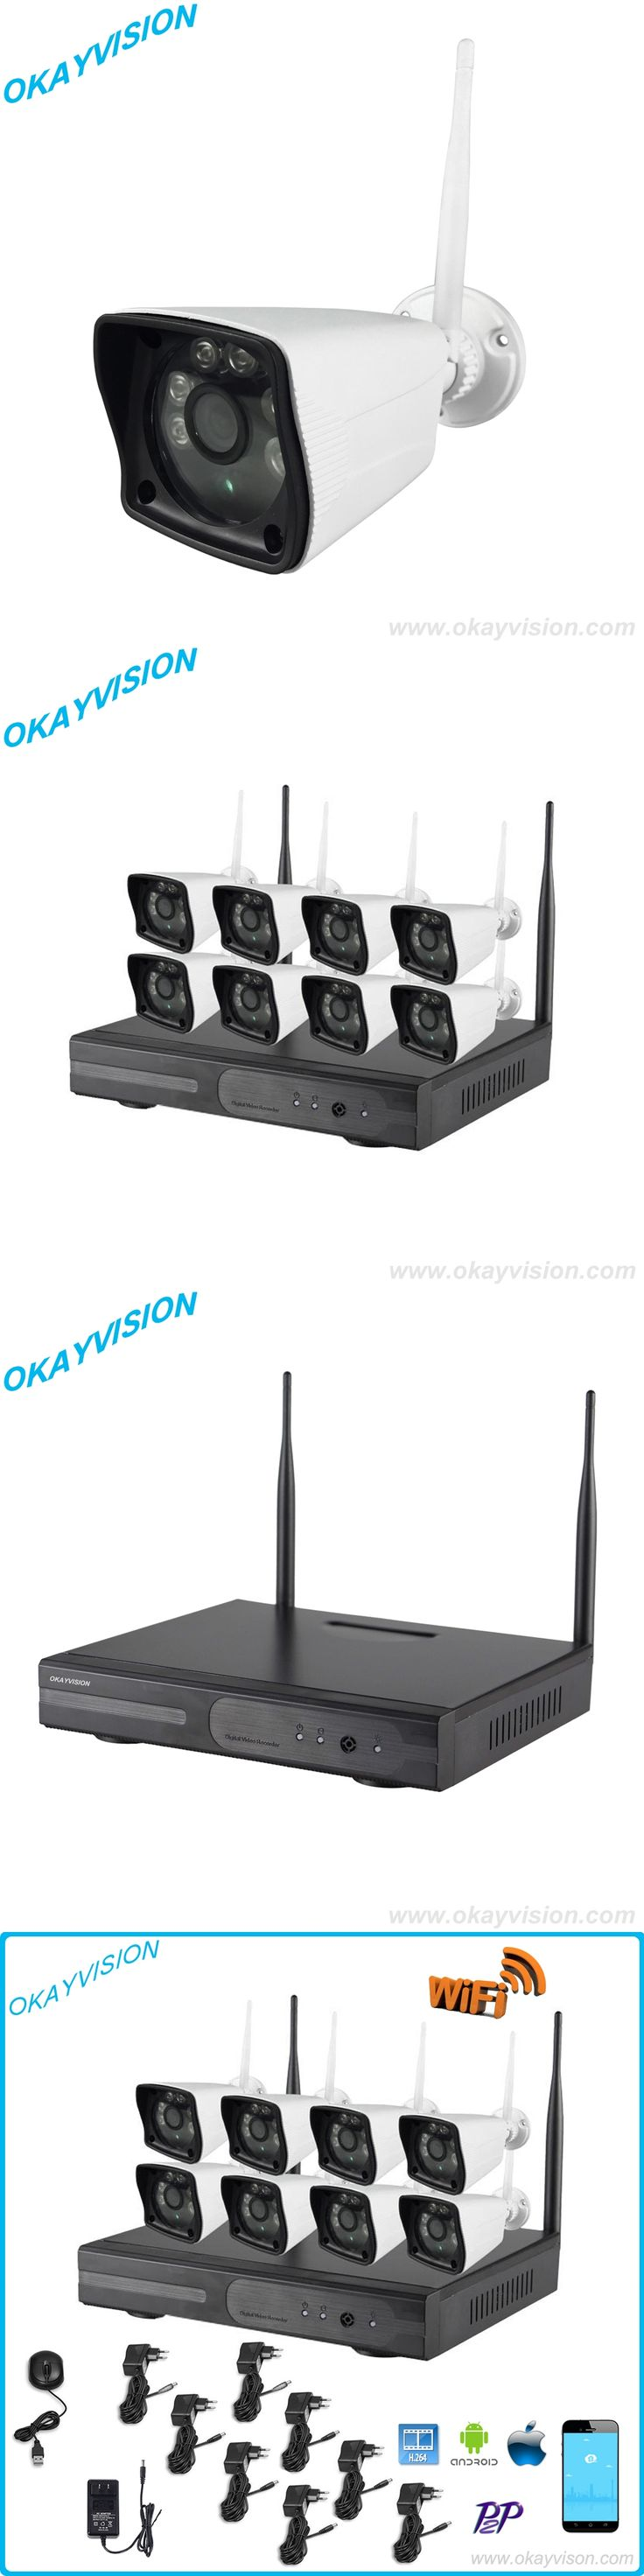 Free shipping for 8CH 1080P Wireless NVR Set 8pcs P2P WIFI IP Camera Outdoor Home Security CCTV System Video Surveillance KIT